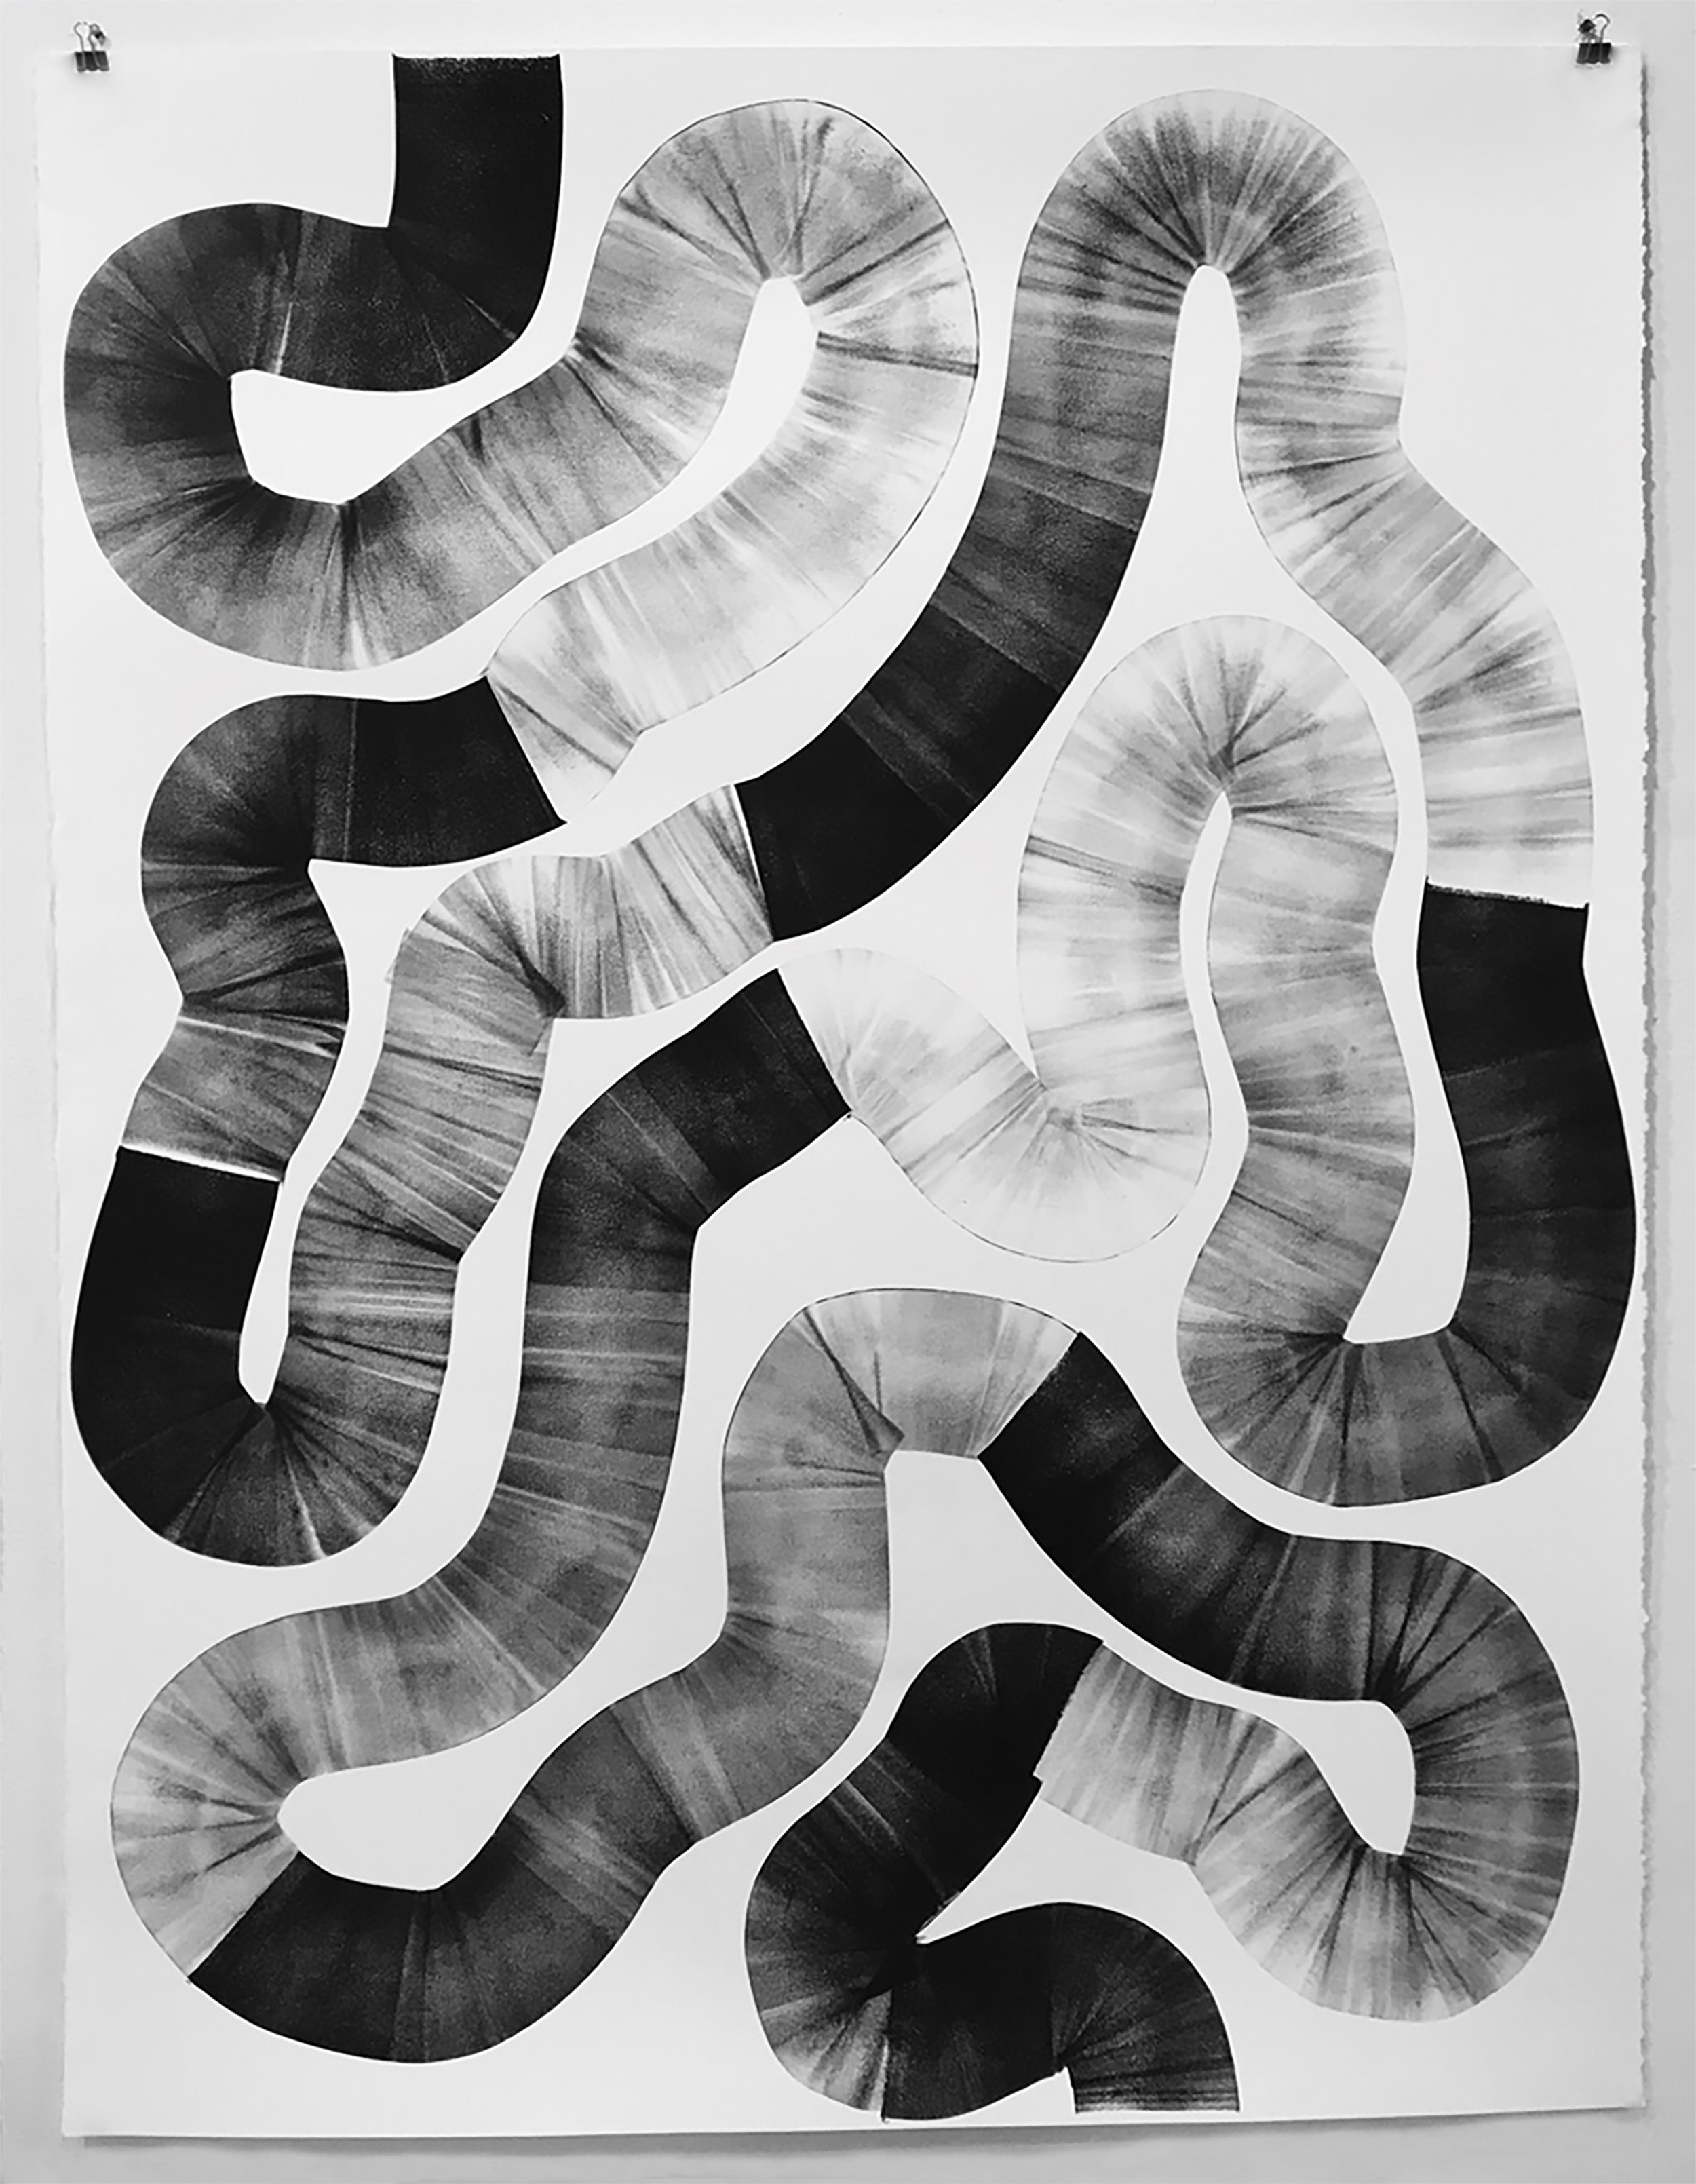 Watching a Snake Snake Through the Plane, 2018, litho ink on paper, 50 x 38 inches